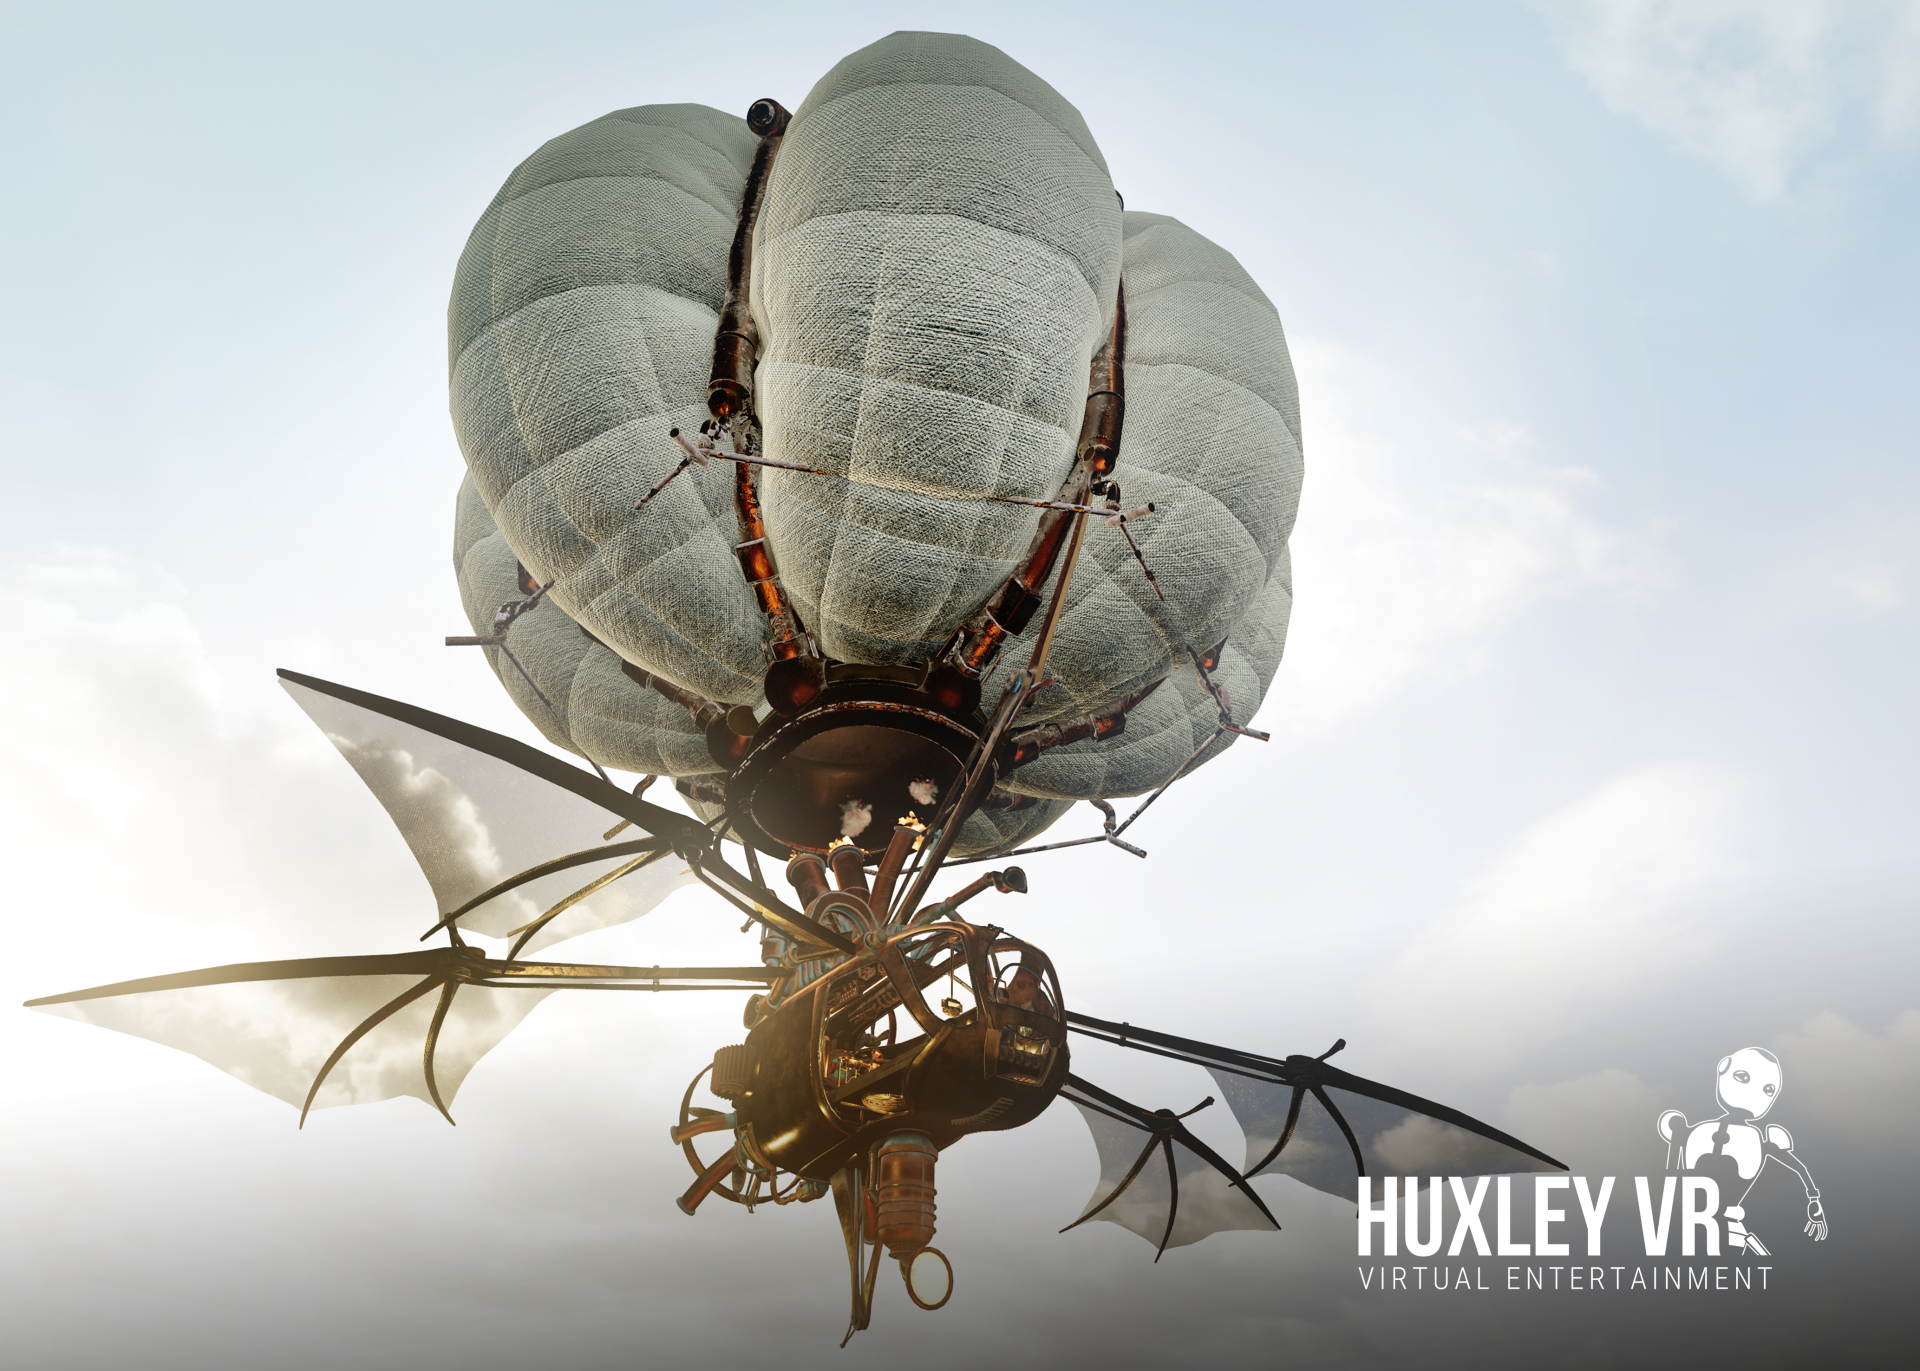 huxley cover afbeelding 4 luchtschip